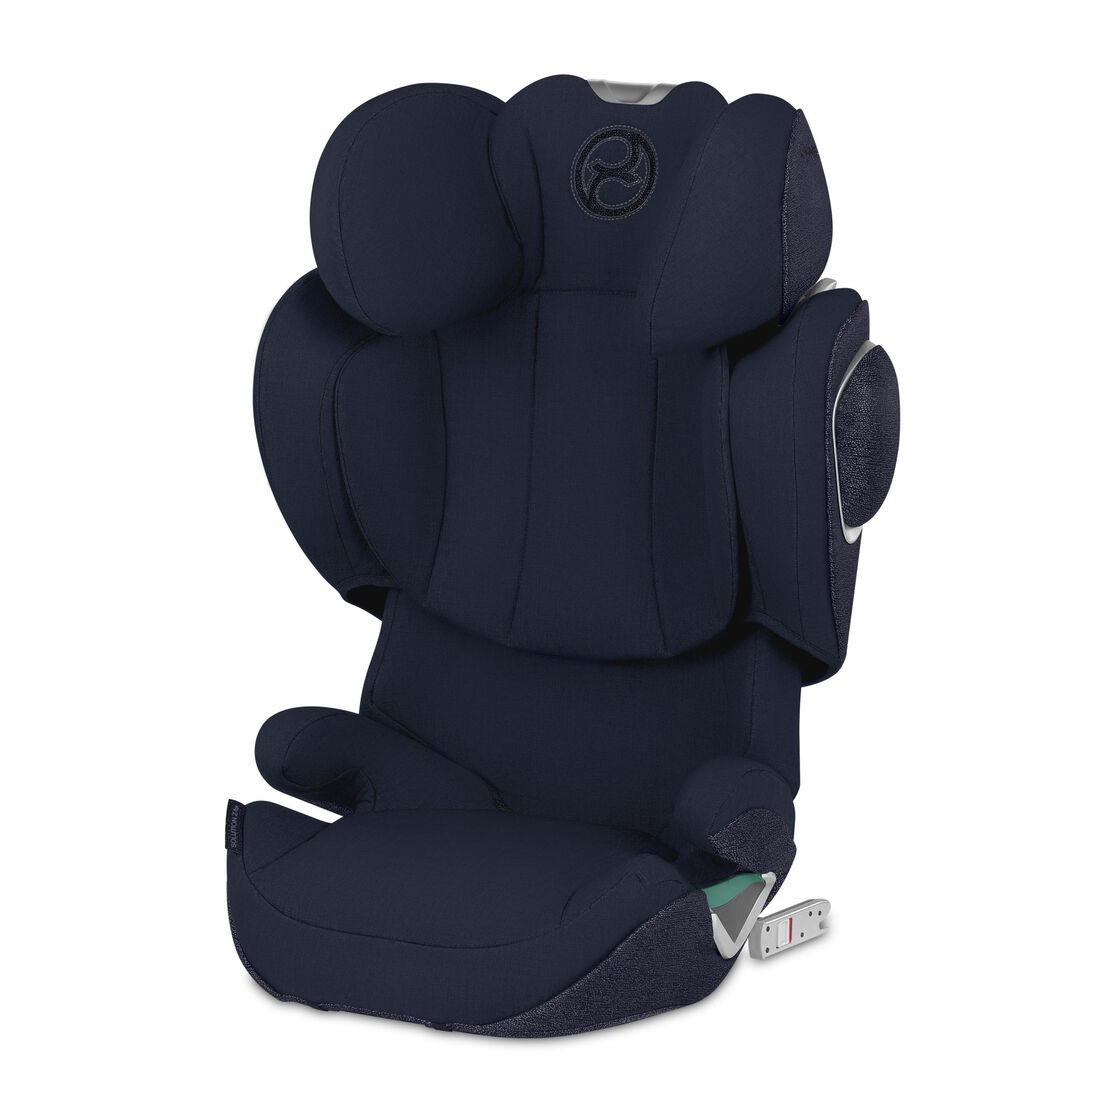 CYBEX Solution Z i-Fix - Nautical Blue Plus in Nautical Blue Plus large image number 1